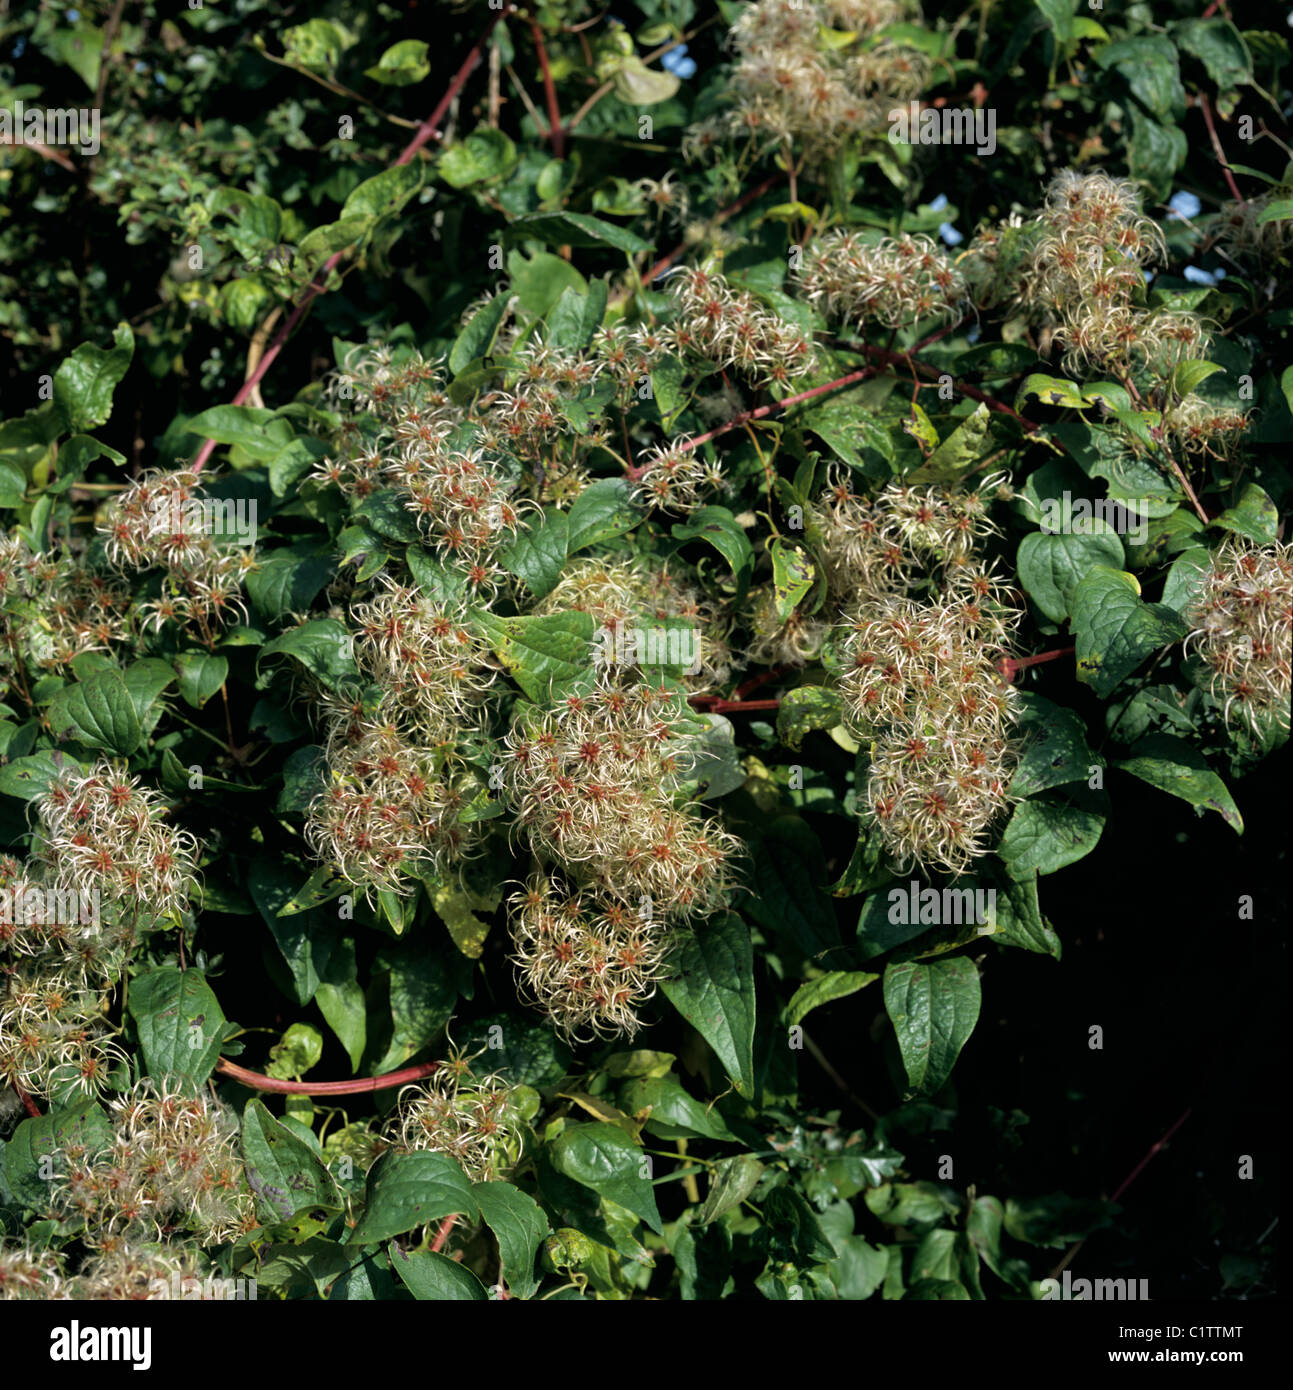 Traveller's joy or old man's beard (Clematis vitalba) seedheads of wild climber - Stock Image